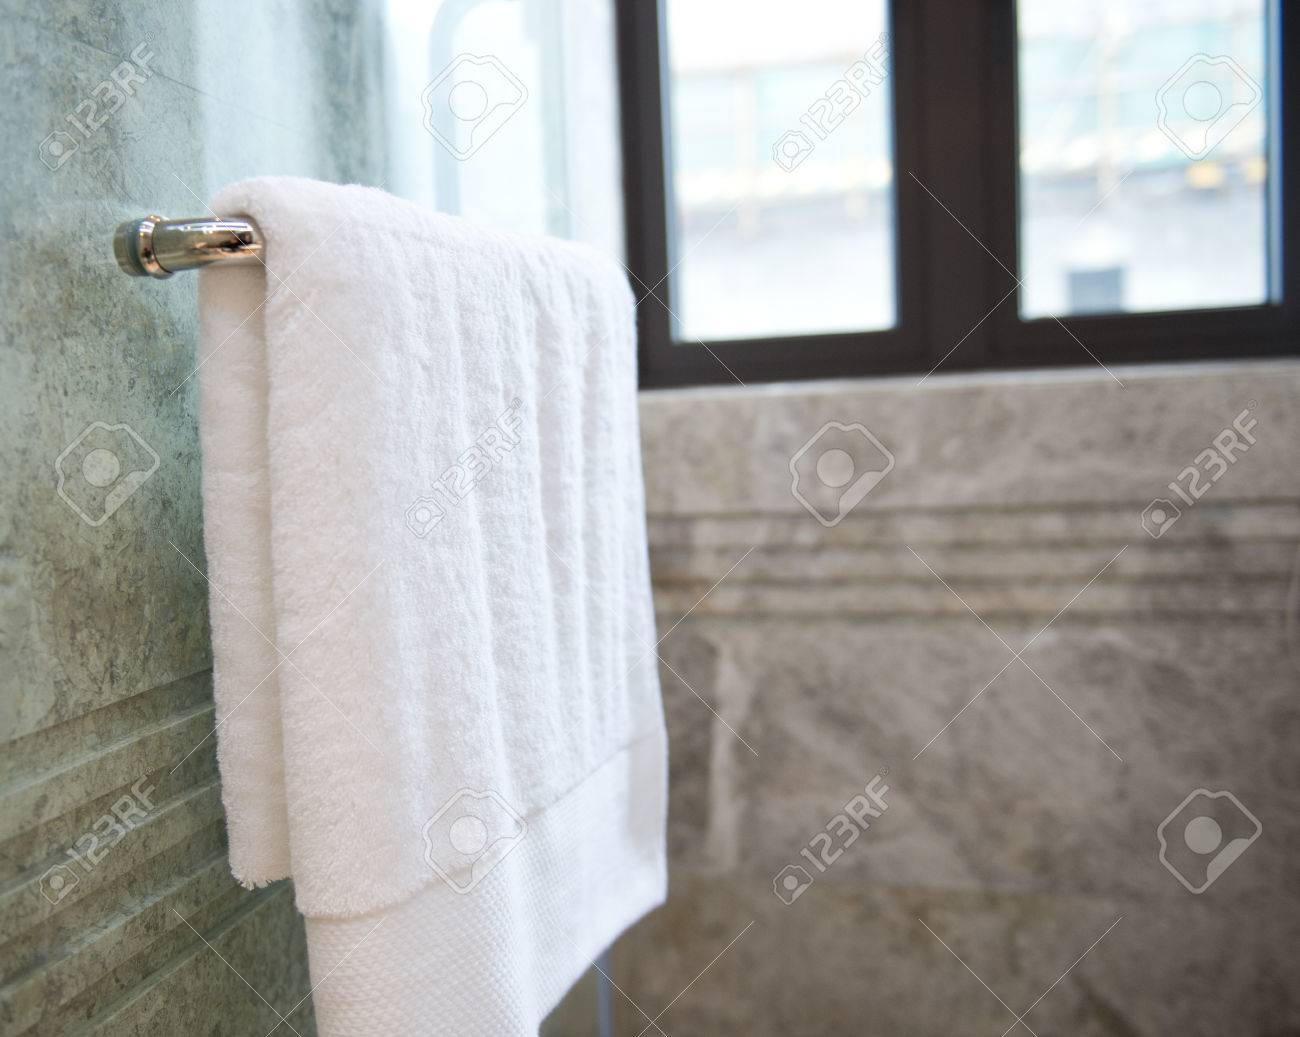 Clean White Towels In Bathroom Prepared To Use. Stock Photo   23087671